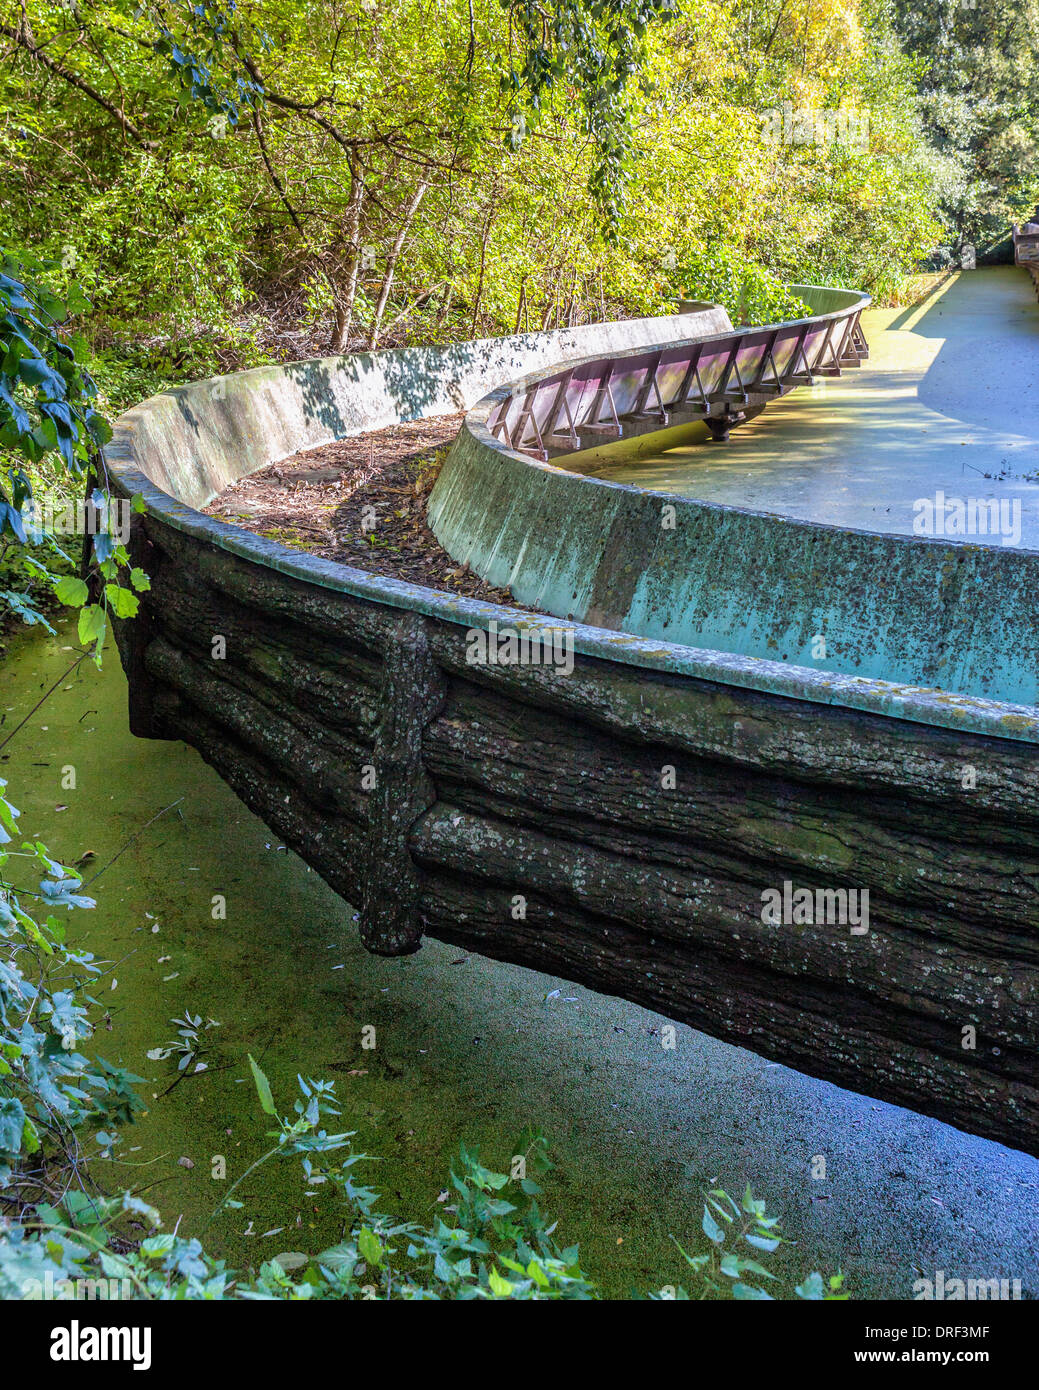 Rusty, dirty, grimy canal of fun water ride over murky, slimy pond at disused amusement park - Spreepark, Planterwald, Berlin - Stock Image